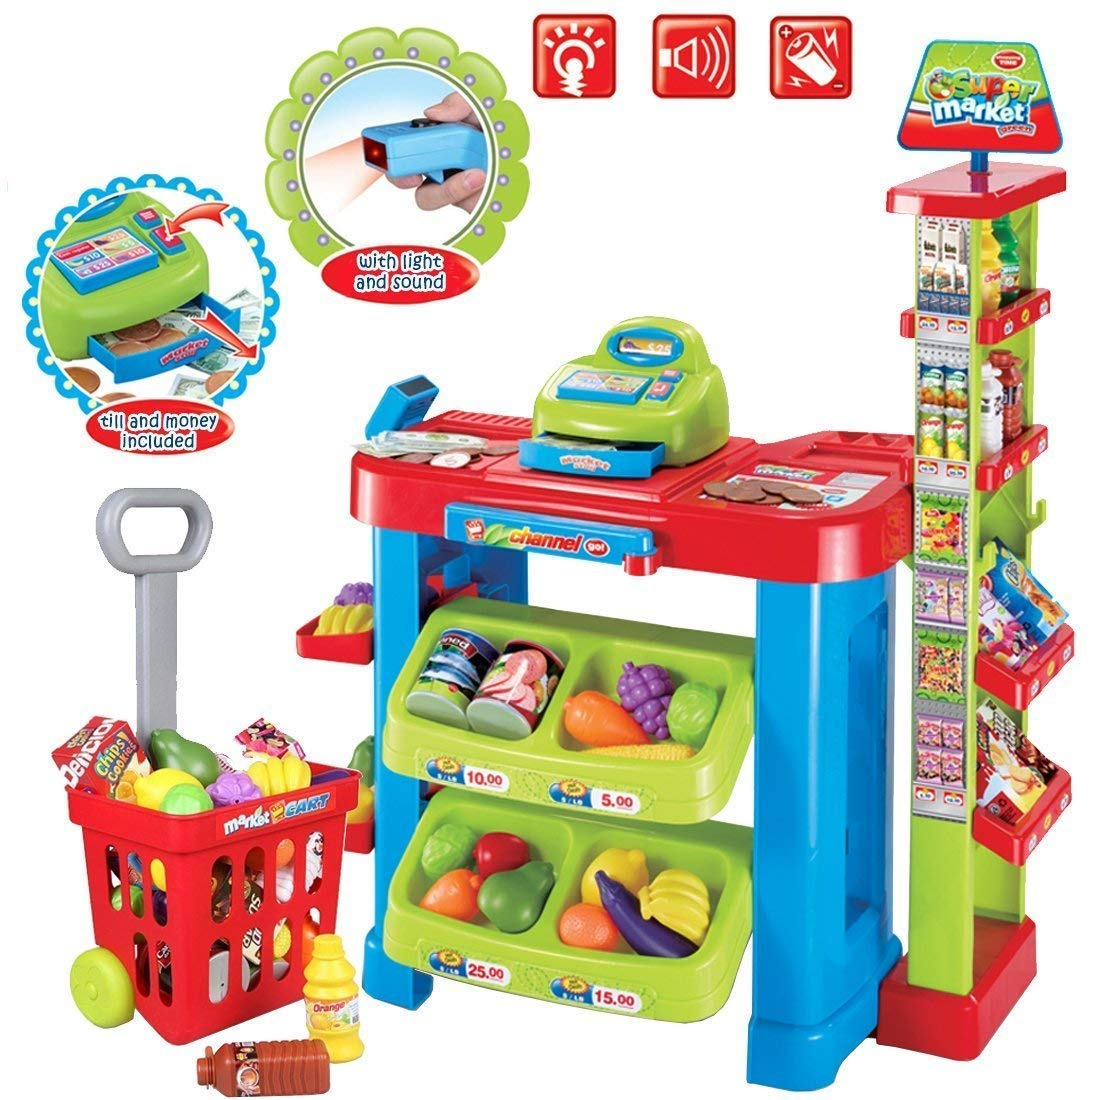 deAO Supermarket Kids Market Stall Toy Shop with Shopping Trolley and Play Food by deAO